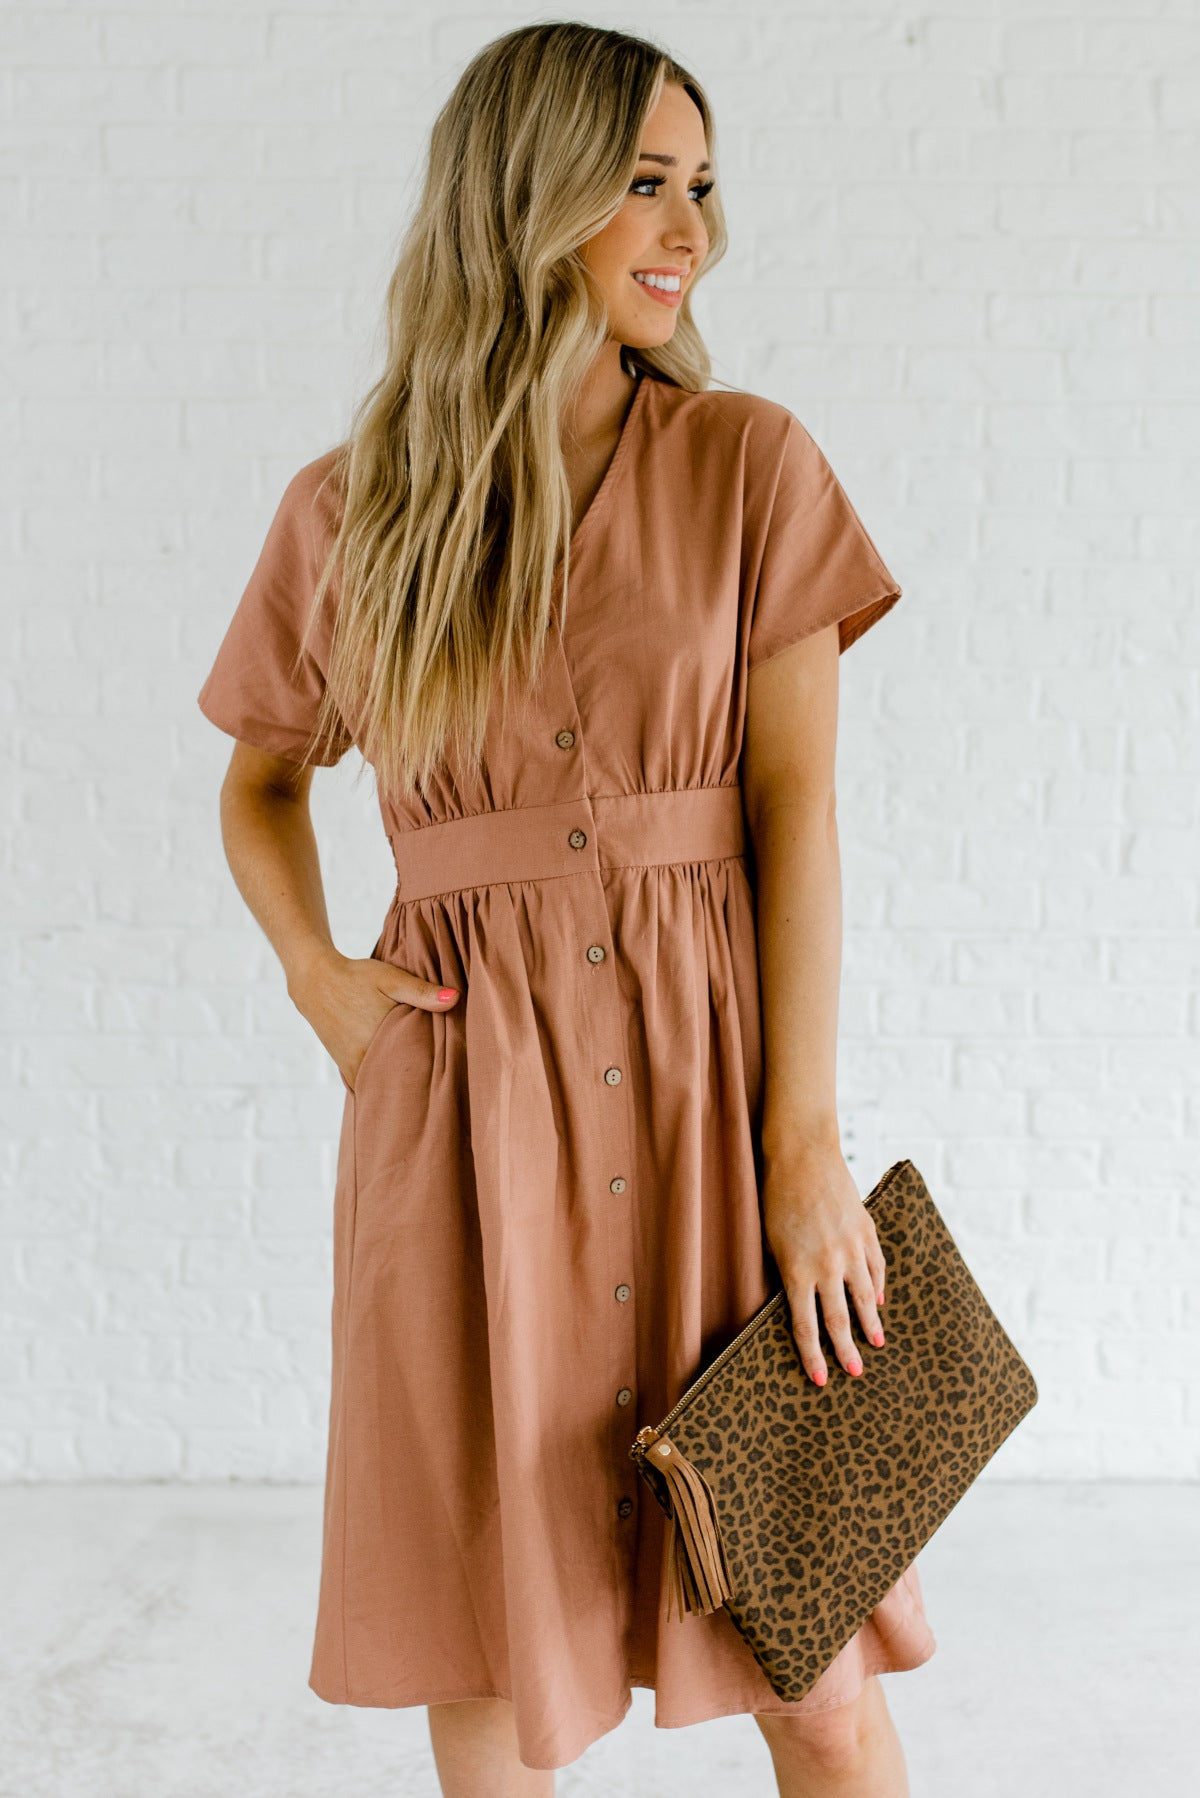 Dusty Rose Pink Knee-Length Boutique Dresses for Women